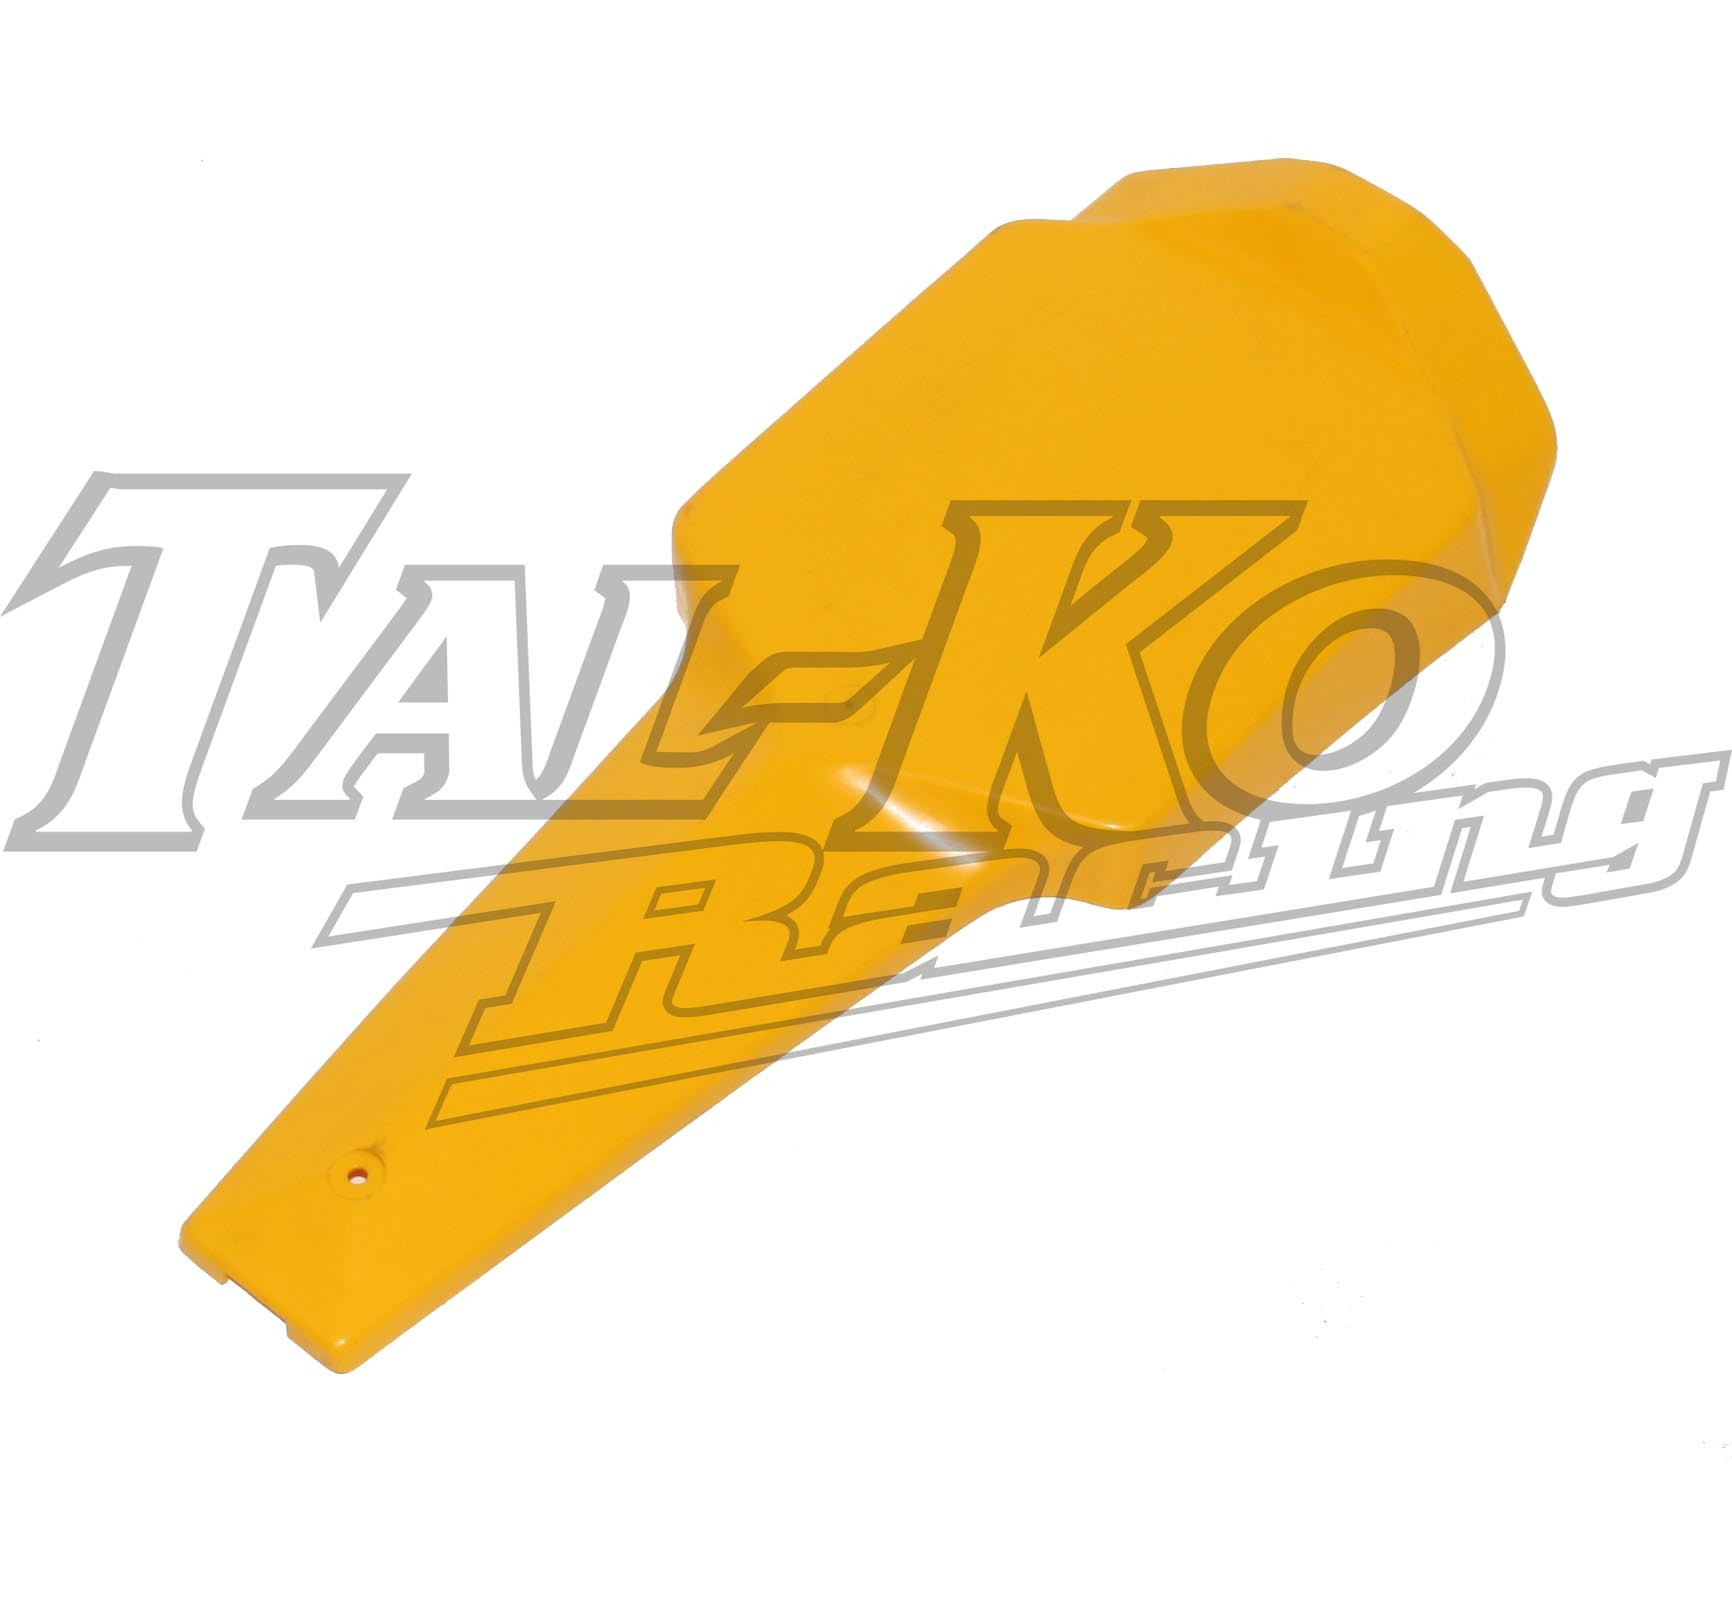 KG FRONT PANEL YELLOW